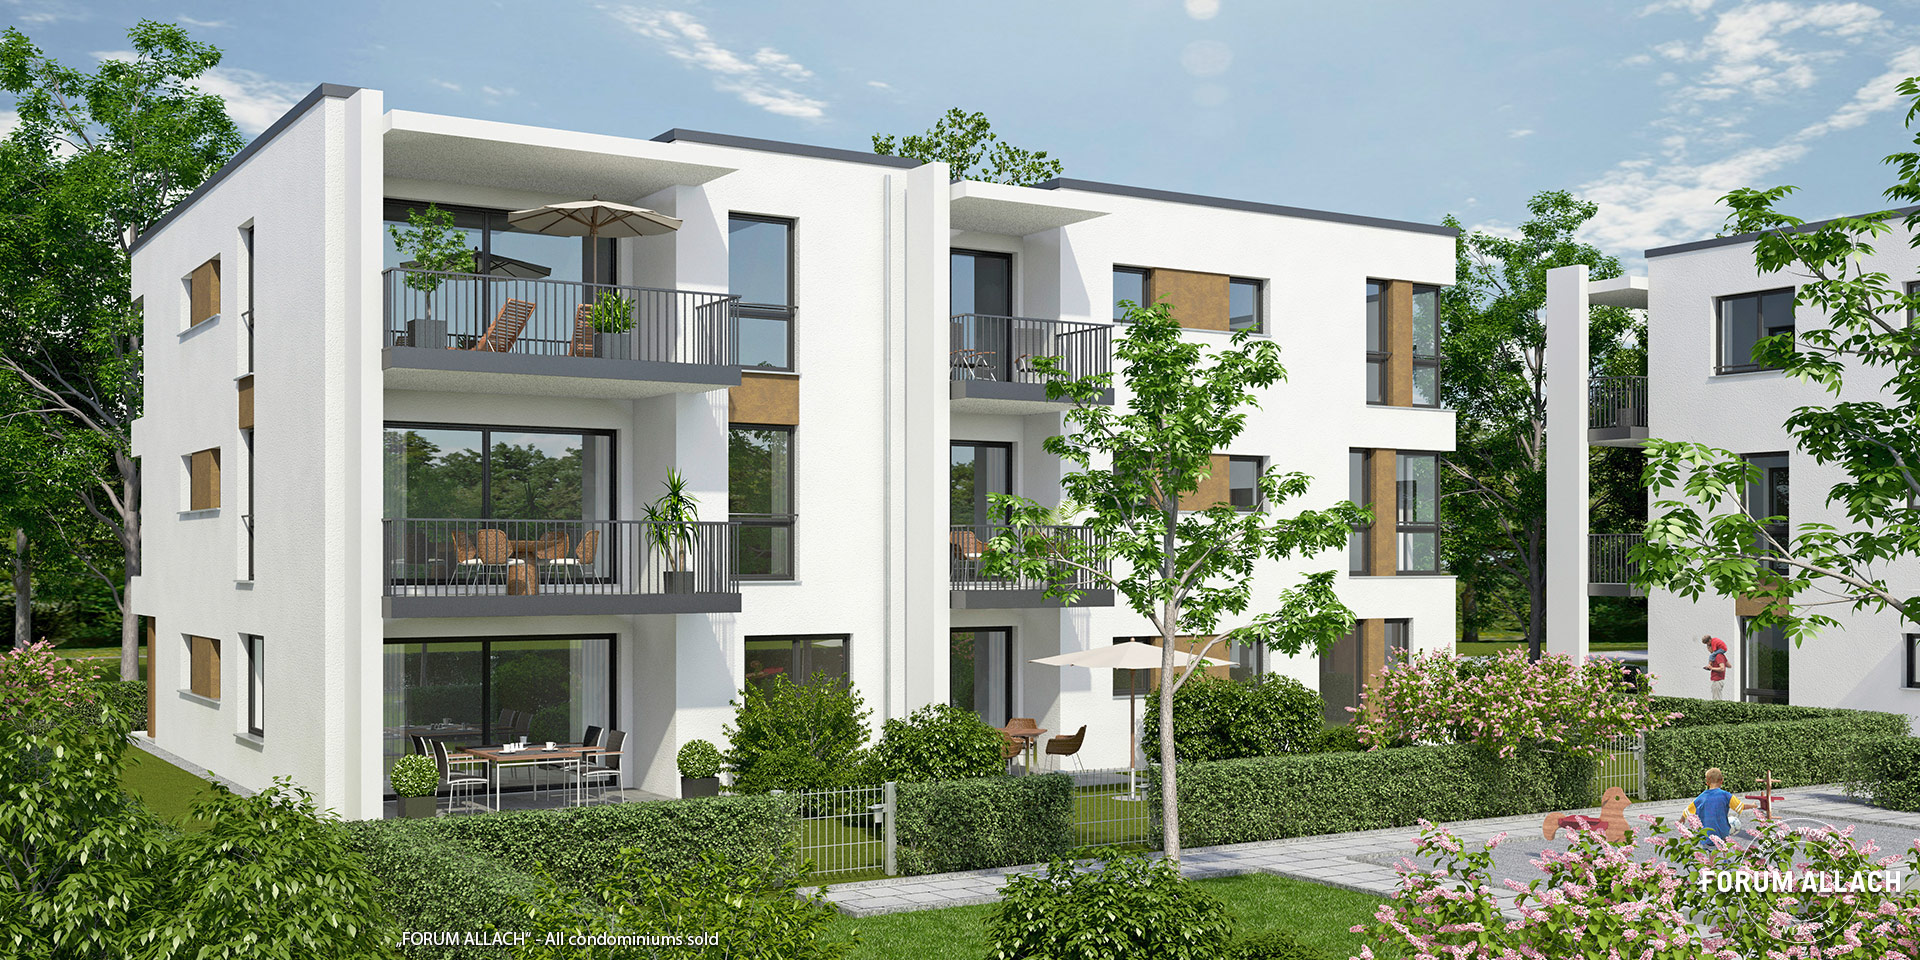 """FORUM ALLACH"" in Munich-Allach: All condominiums sold"